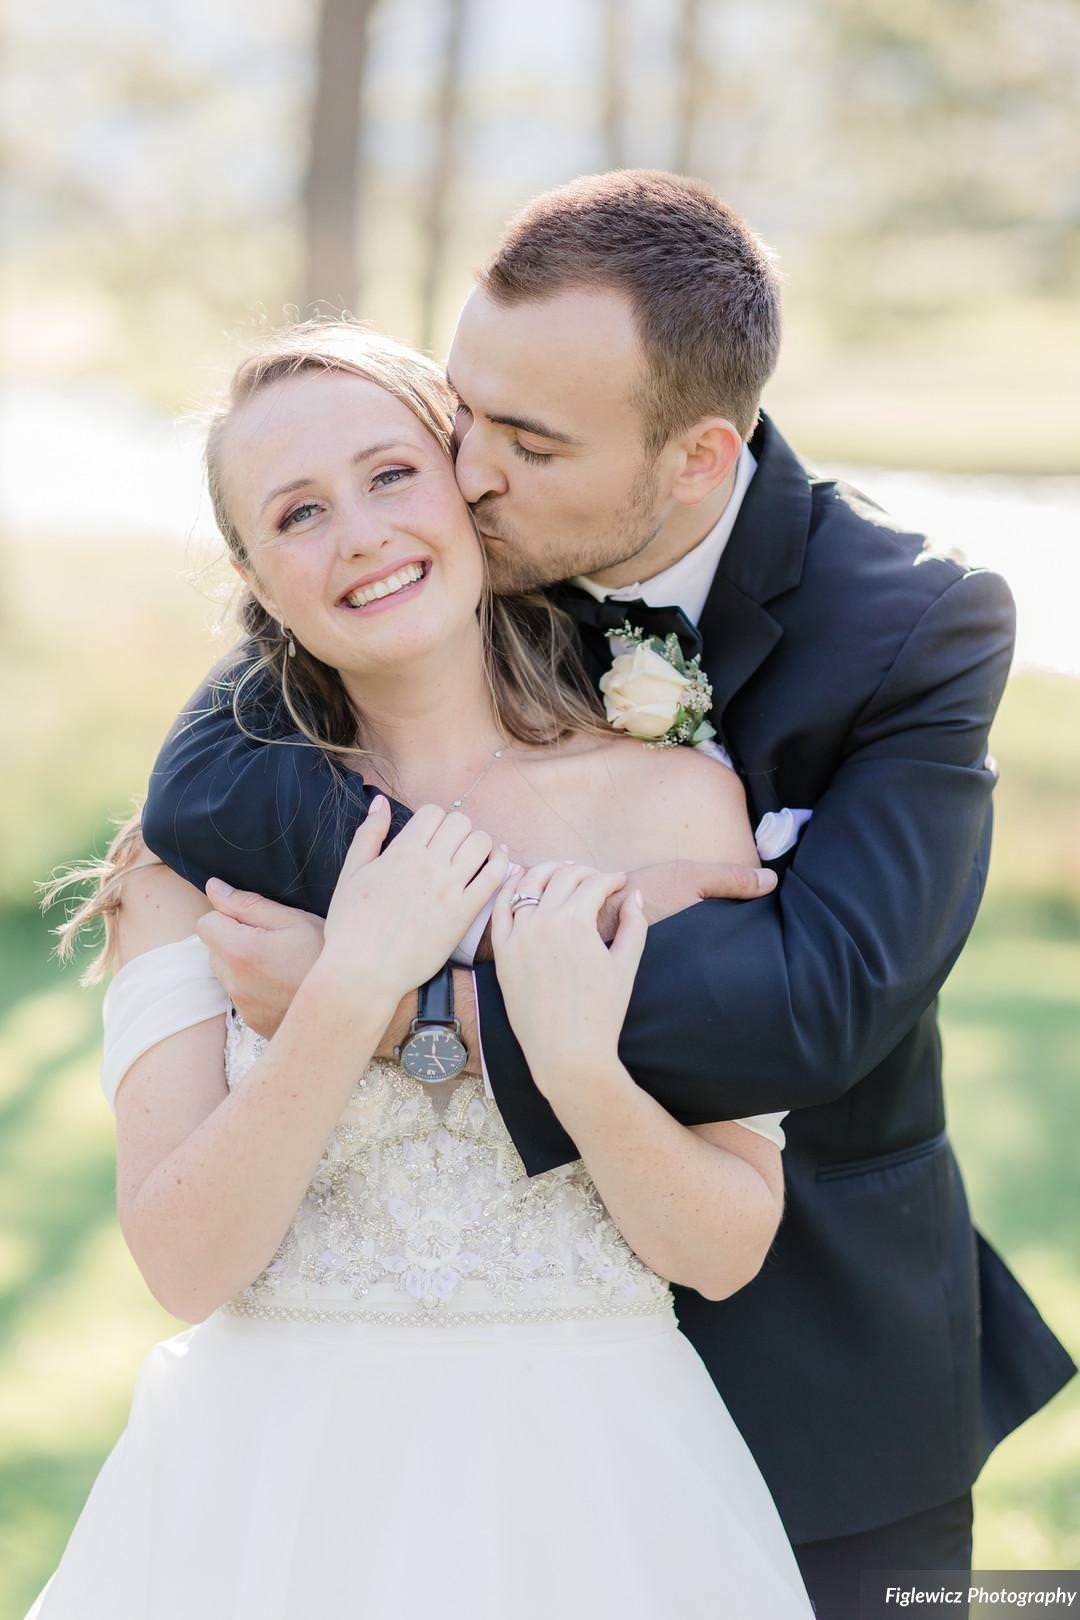 Garden_Tinsley_FiglewiczPhotography_LakeTahoeWeddingSquawValleyCreekTaylorBrendan00117_big